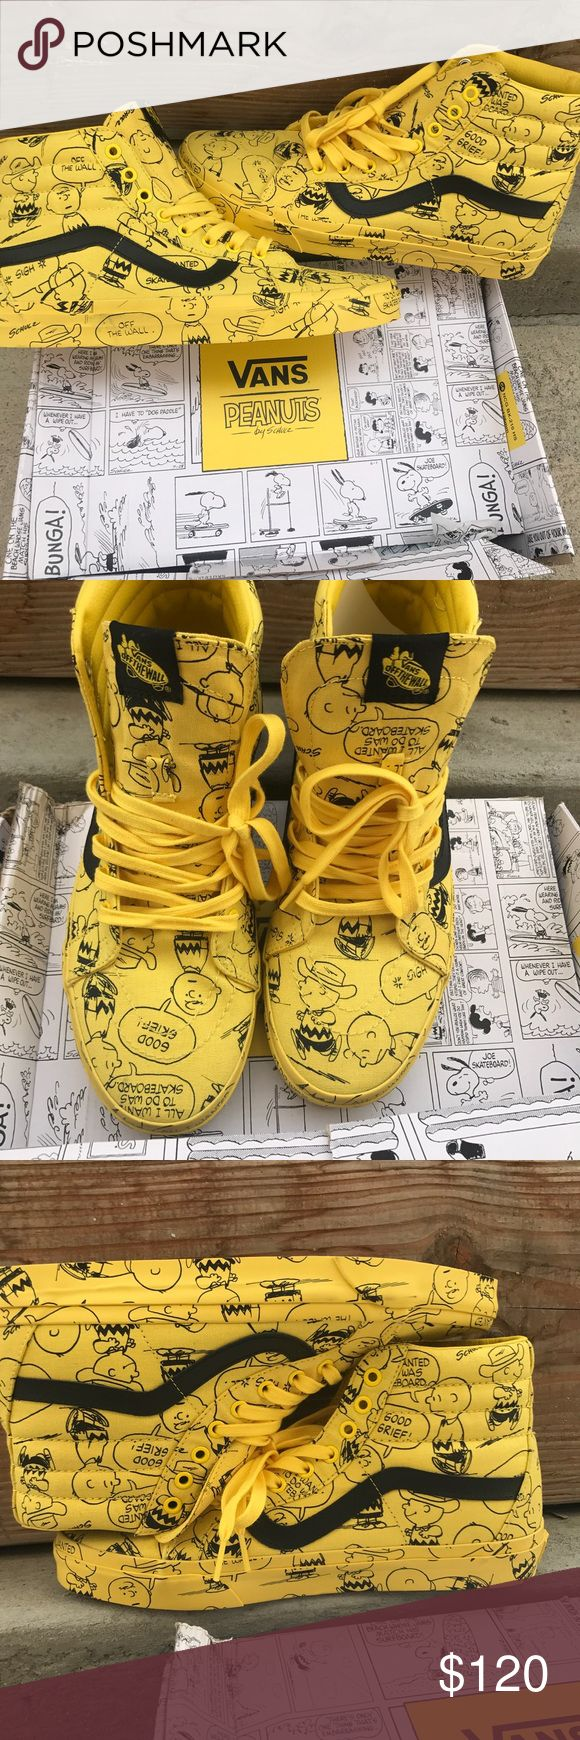 Vans sk8-highs peanuts. Brand new with tags. Comes with original box. I have a few sizes available. 10.5 and 11 in men's. $120 each Vans Shoes Sneakers